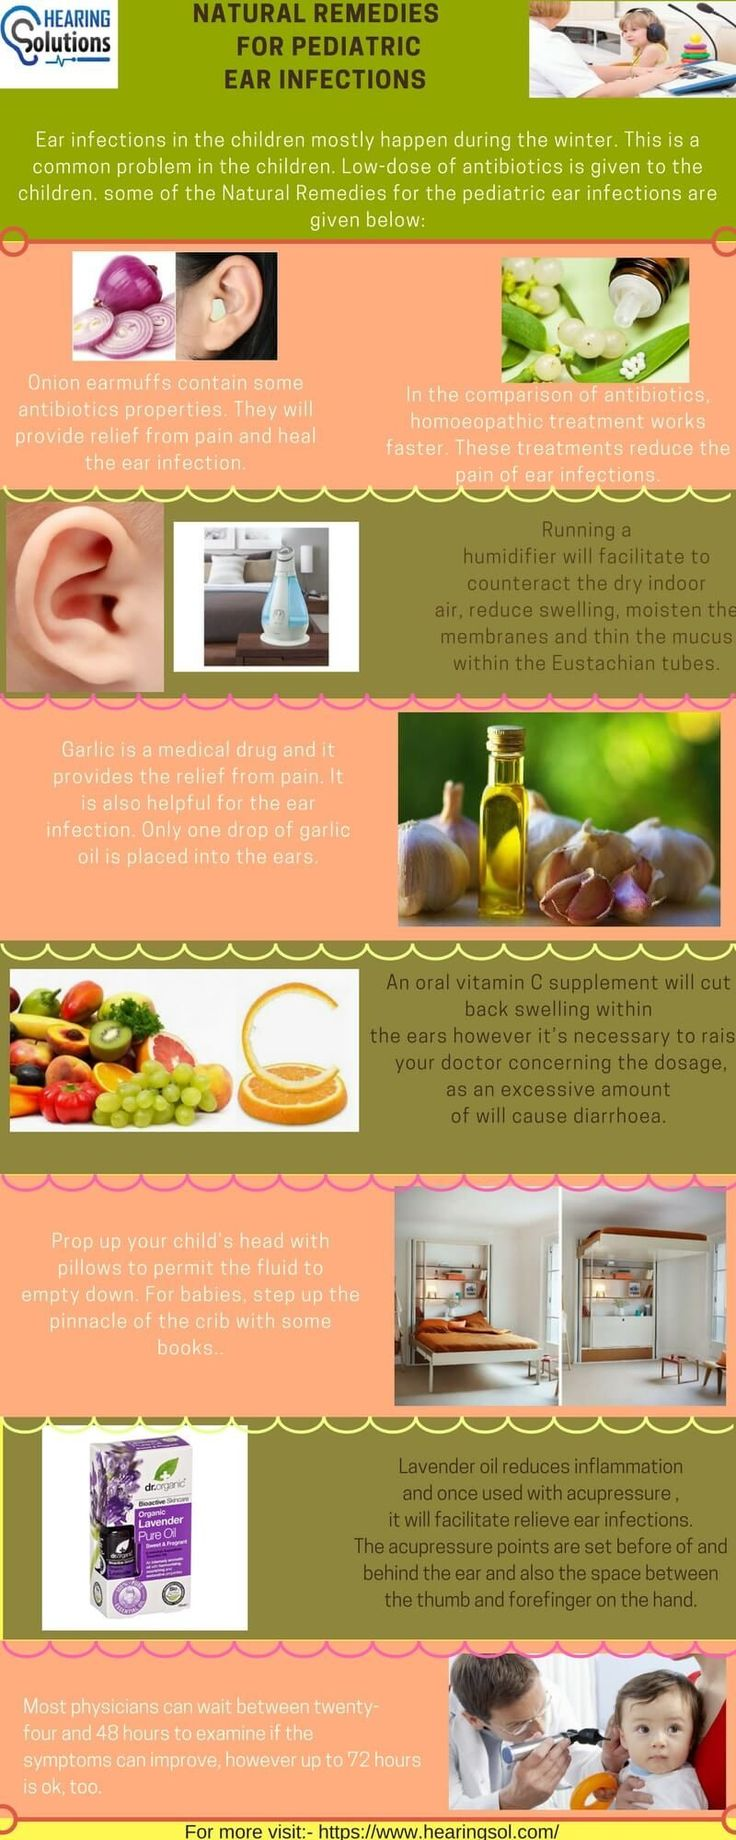 Ear infection in children mostly happens during the winter. There are many types of natural remedies that are helpful in the ear infection. Onion earmuffs provide the relief from pain and contain antimicrobial properties. Garlic oil is the mechanical drug and it also provides the relief from pain and may fight an ear infection. For more visit:-https://www.hearingsol.com/pediatric-ear-infection/